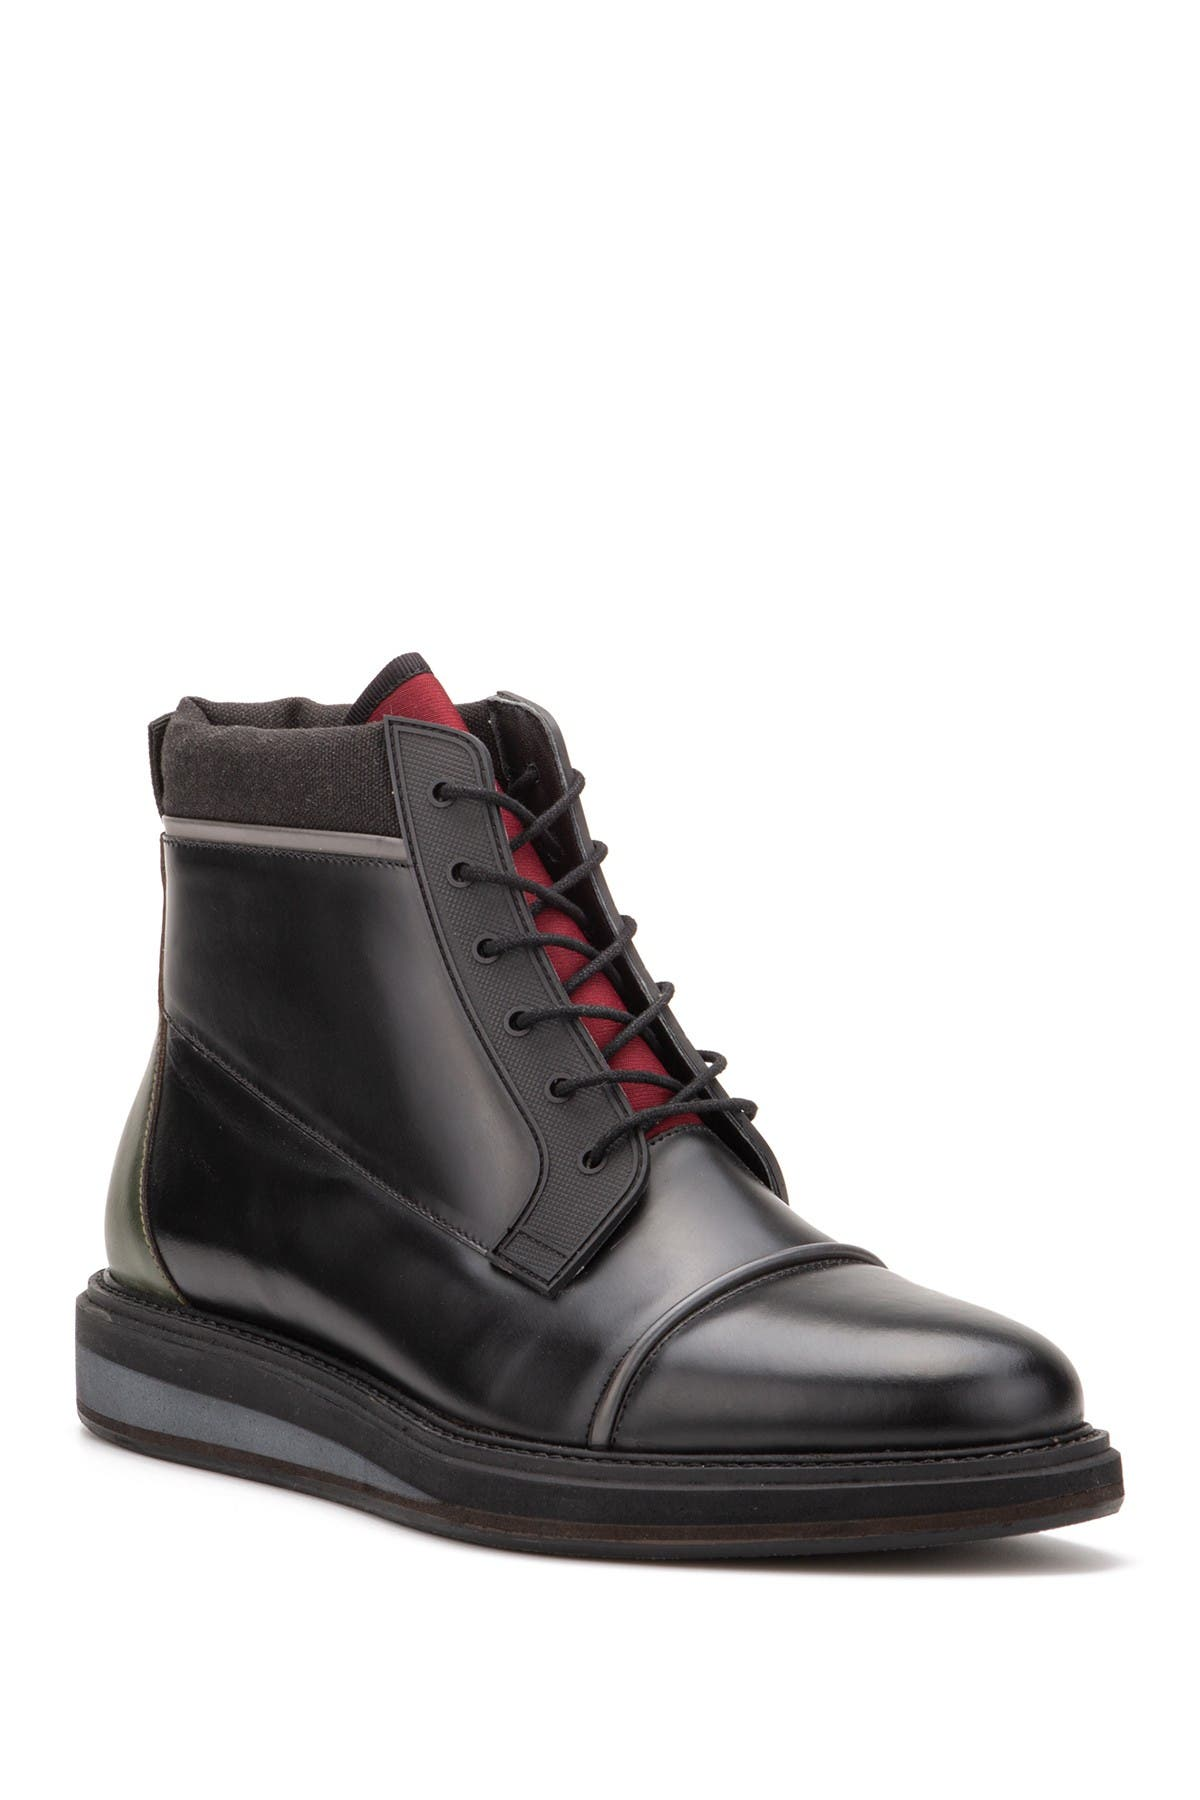 Image of Vintage Foundry Garnet Leather Lace-Up Boot